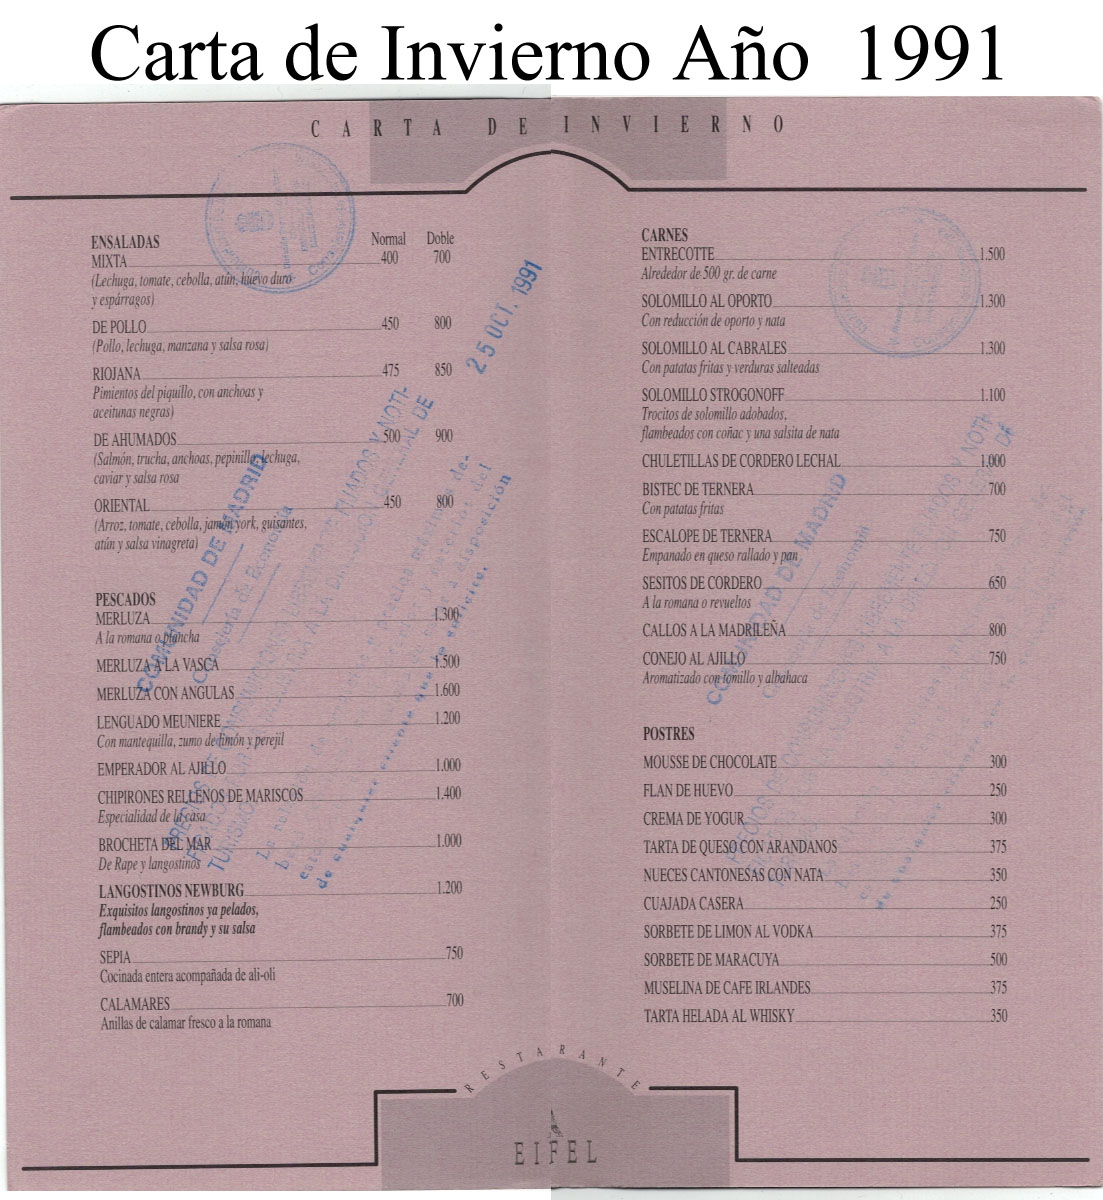 CartaInvierno1991